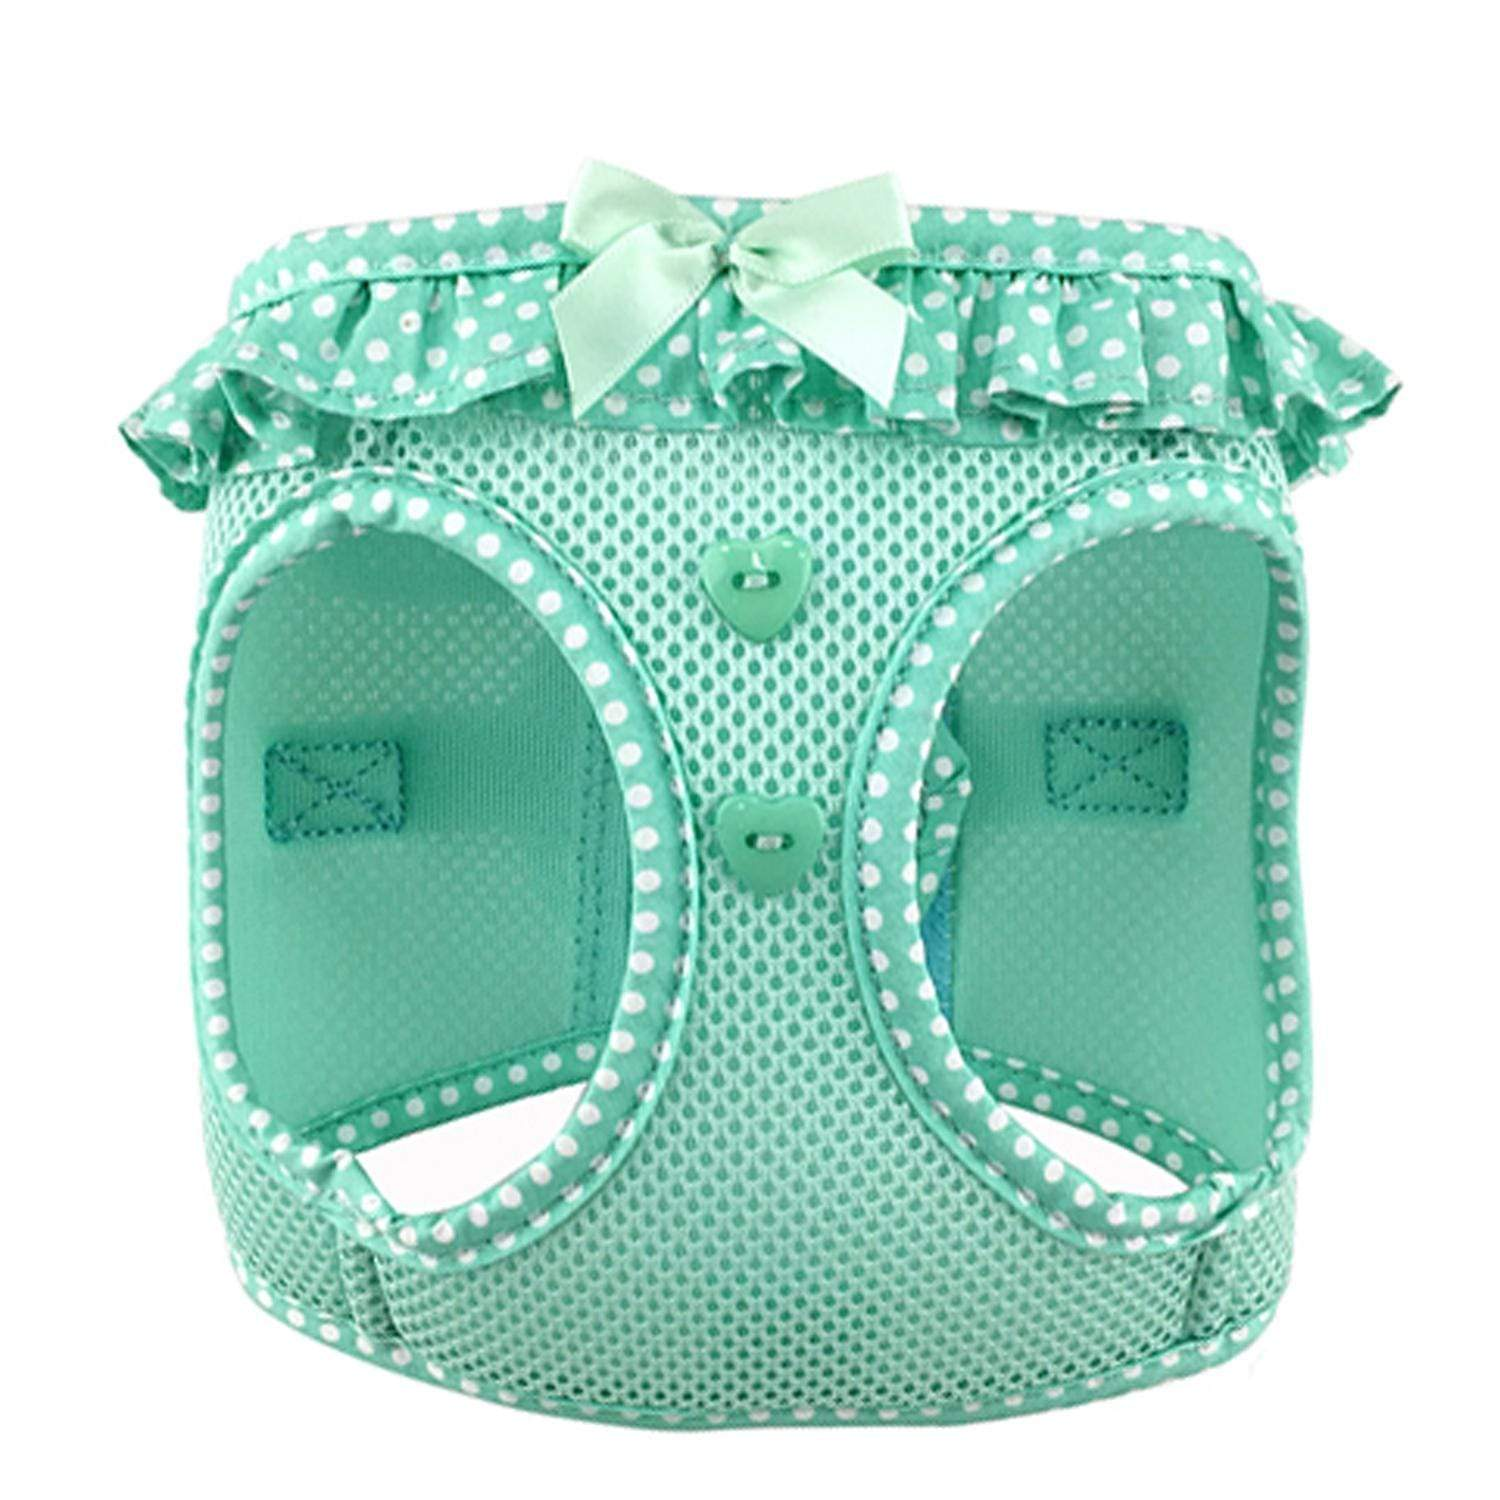 polka dog step-in dog harness - teal - front